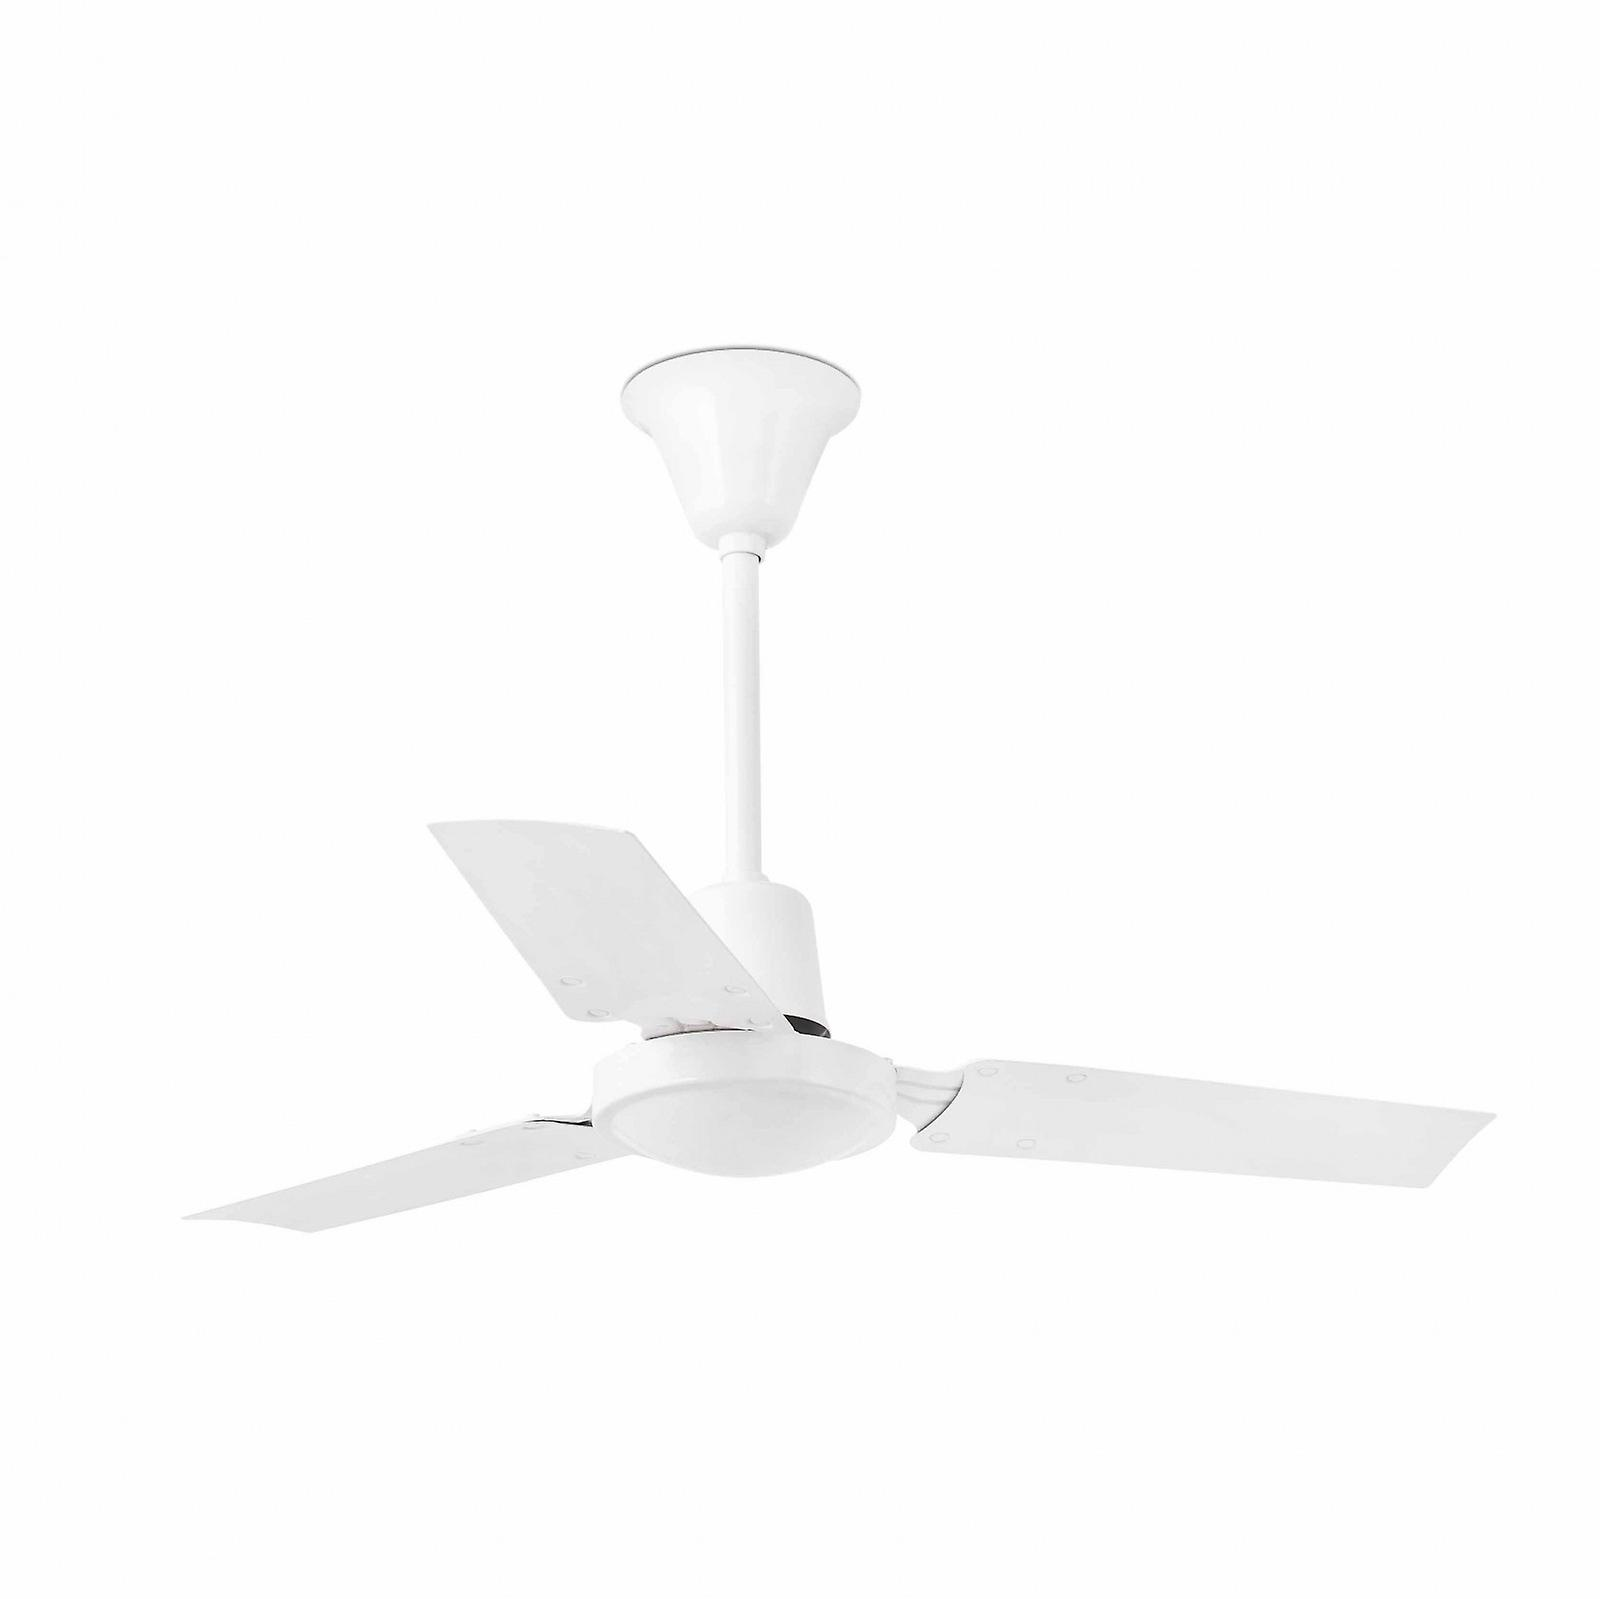 Faro Ceiling Fan Mini Indus White 92 Cm 36